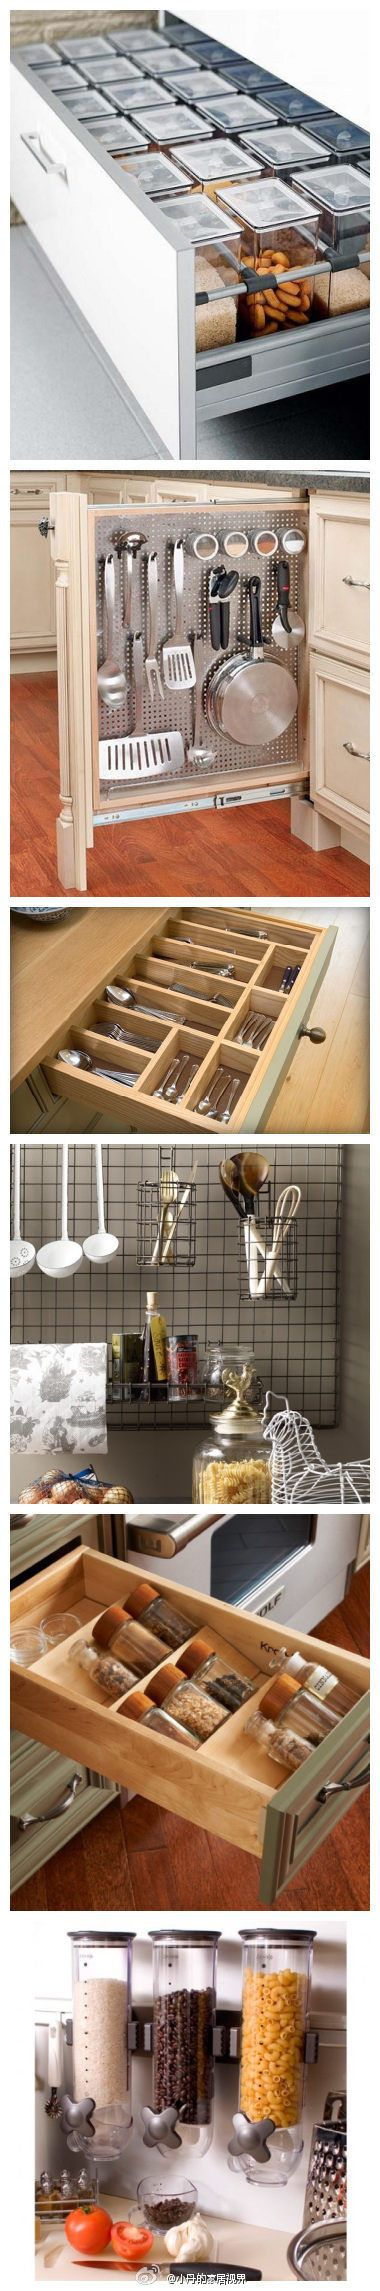 Kitchen storage systems costmad do not sell this ideaproduct